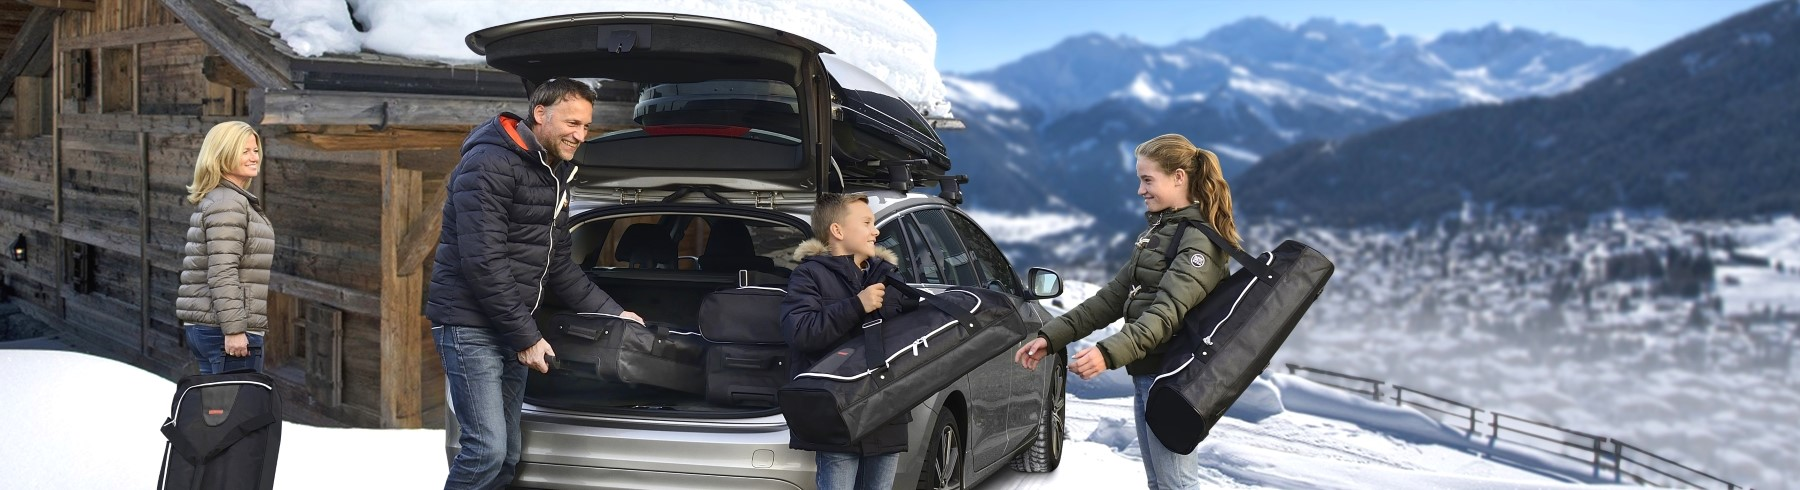 car-bags-carefree-traveling-winter